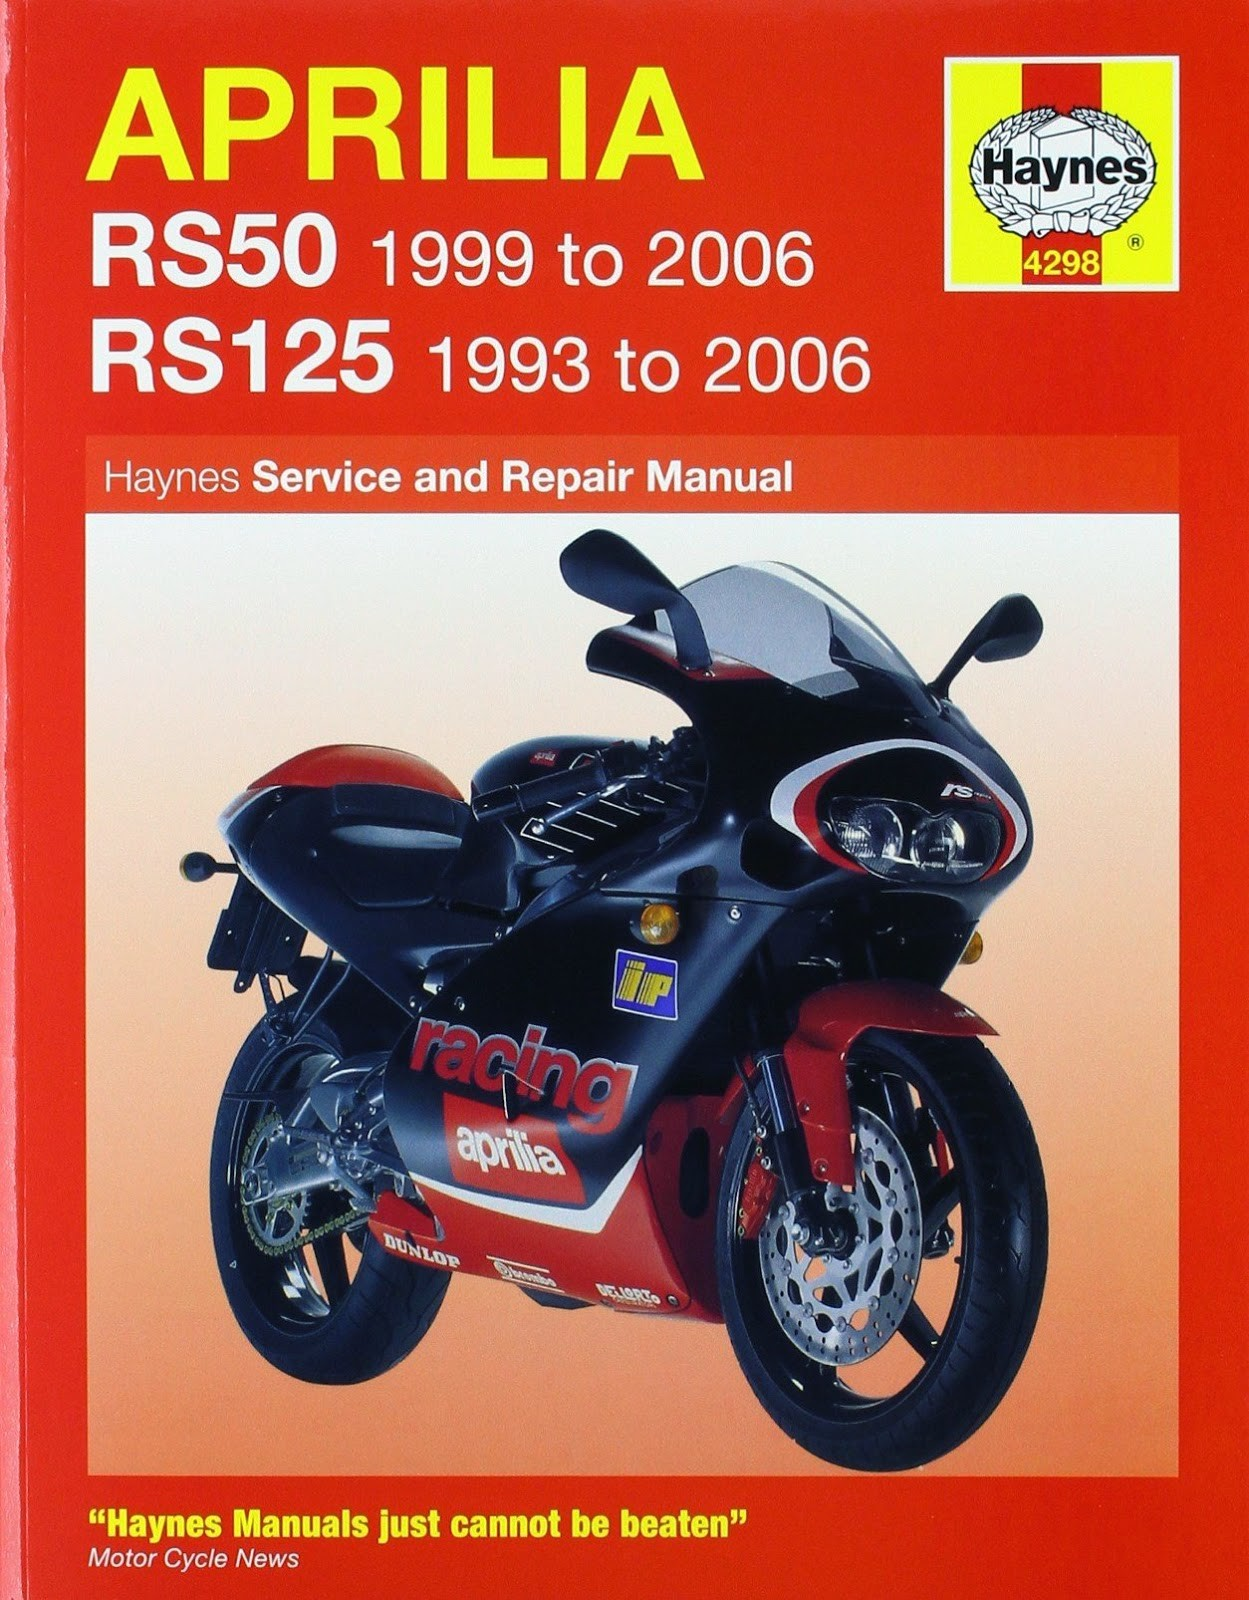 aprilia rs 125 engine diagram aprilia rs 125 aprilia rs 125 problems  troubleshooting fault of aprilia